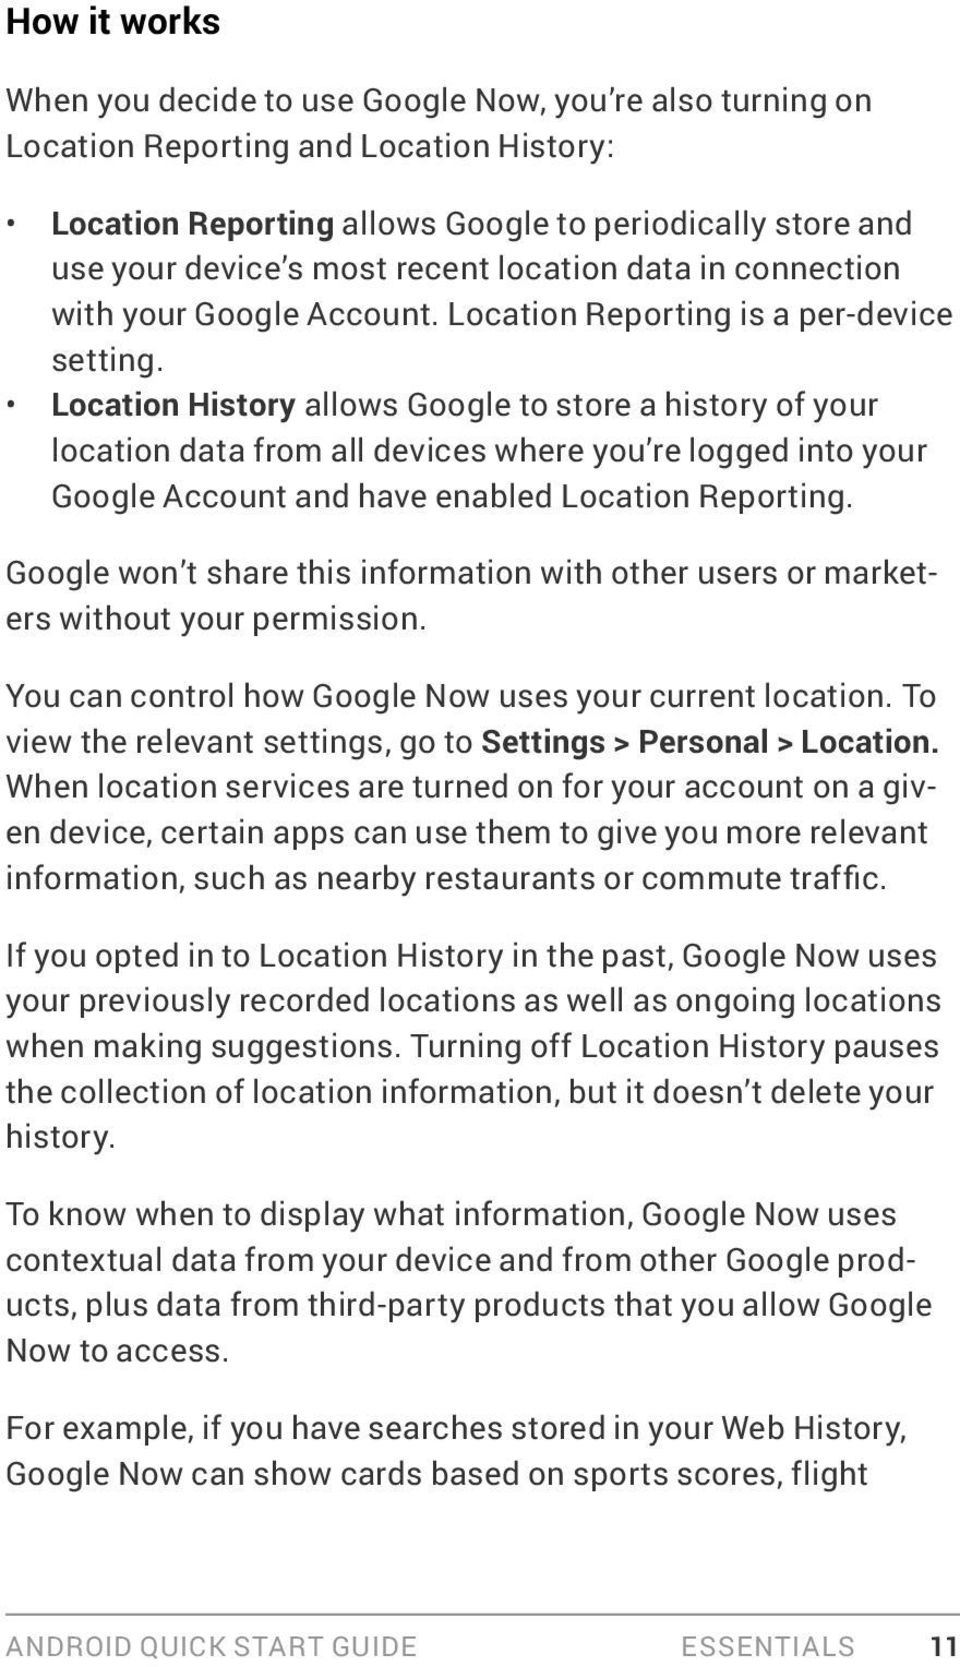 Location History allows Google to store a history of your location data from all devices where you re logged into your Google Account and have enabled Location Reporting.